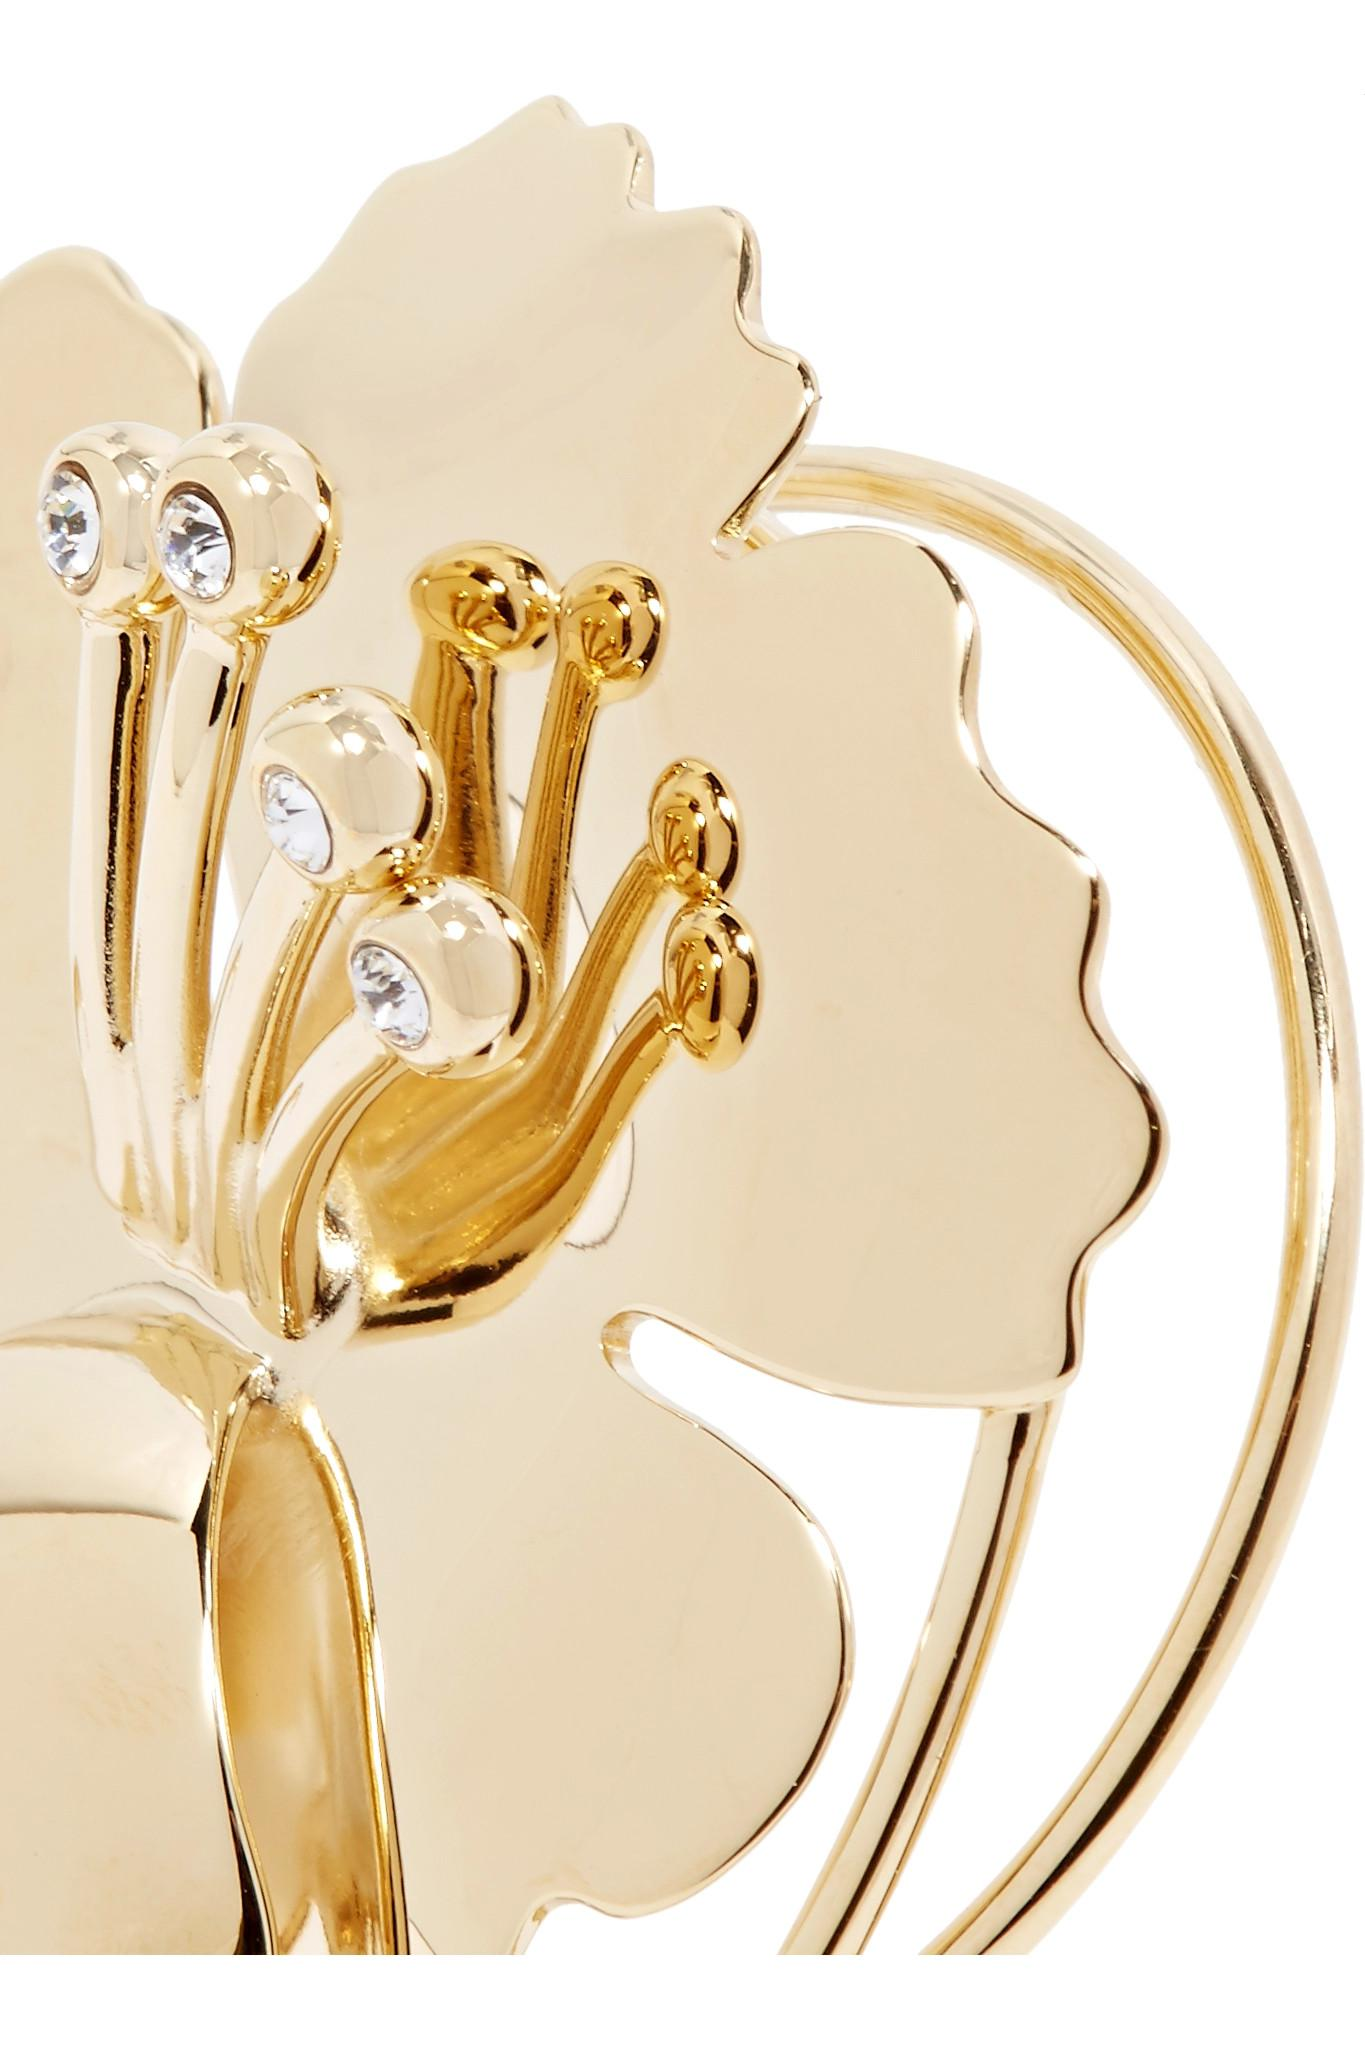 J.W.Anderson Gold-plated Crystal Ear Cuff NaYMds20